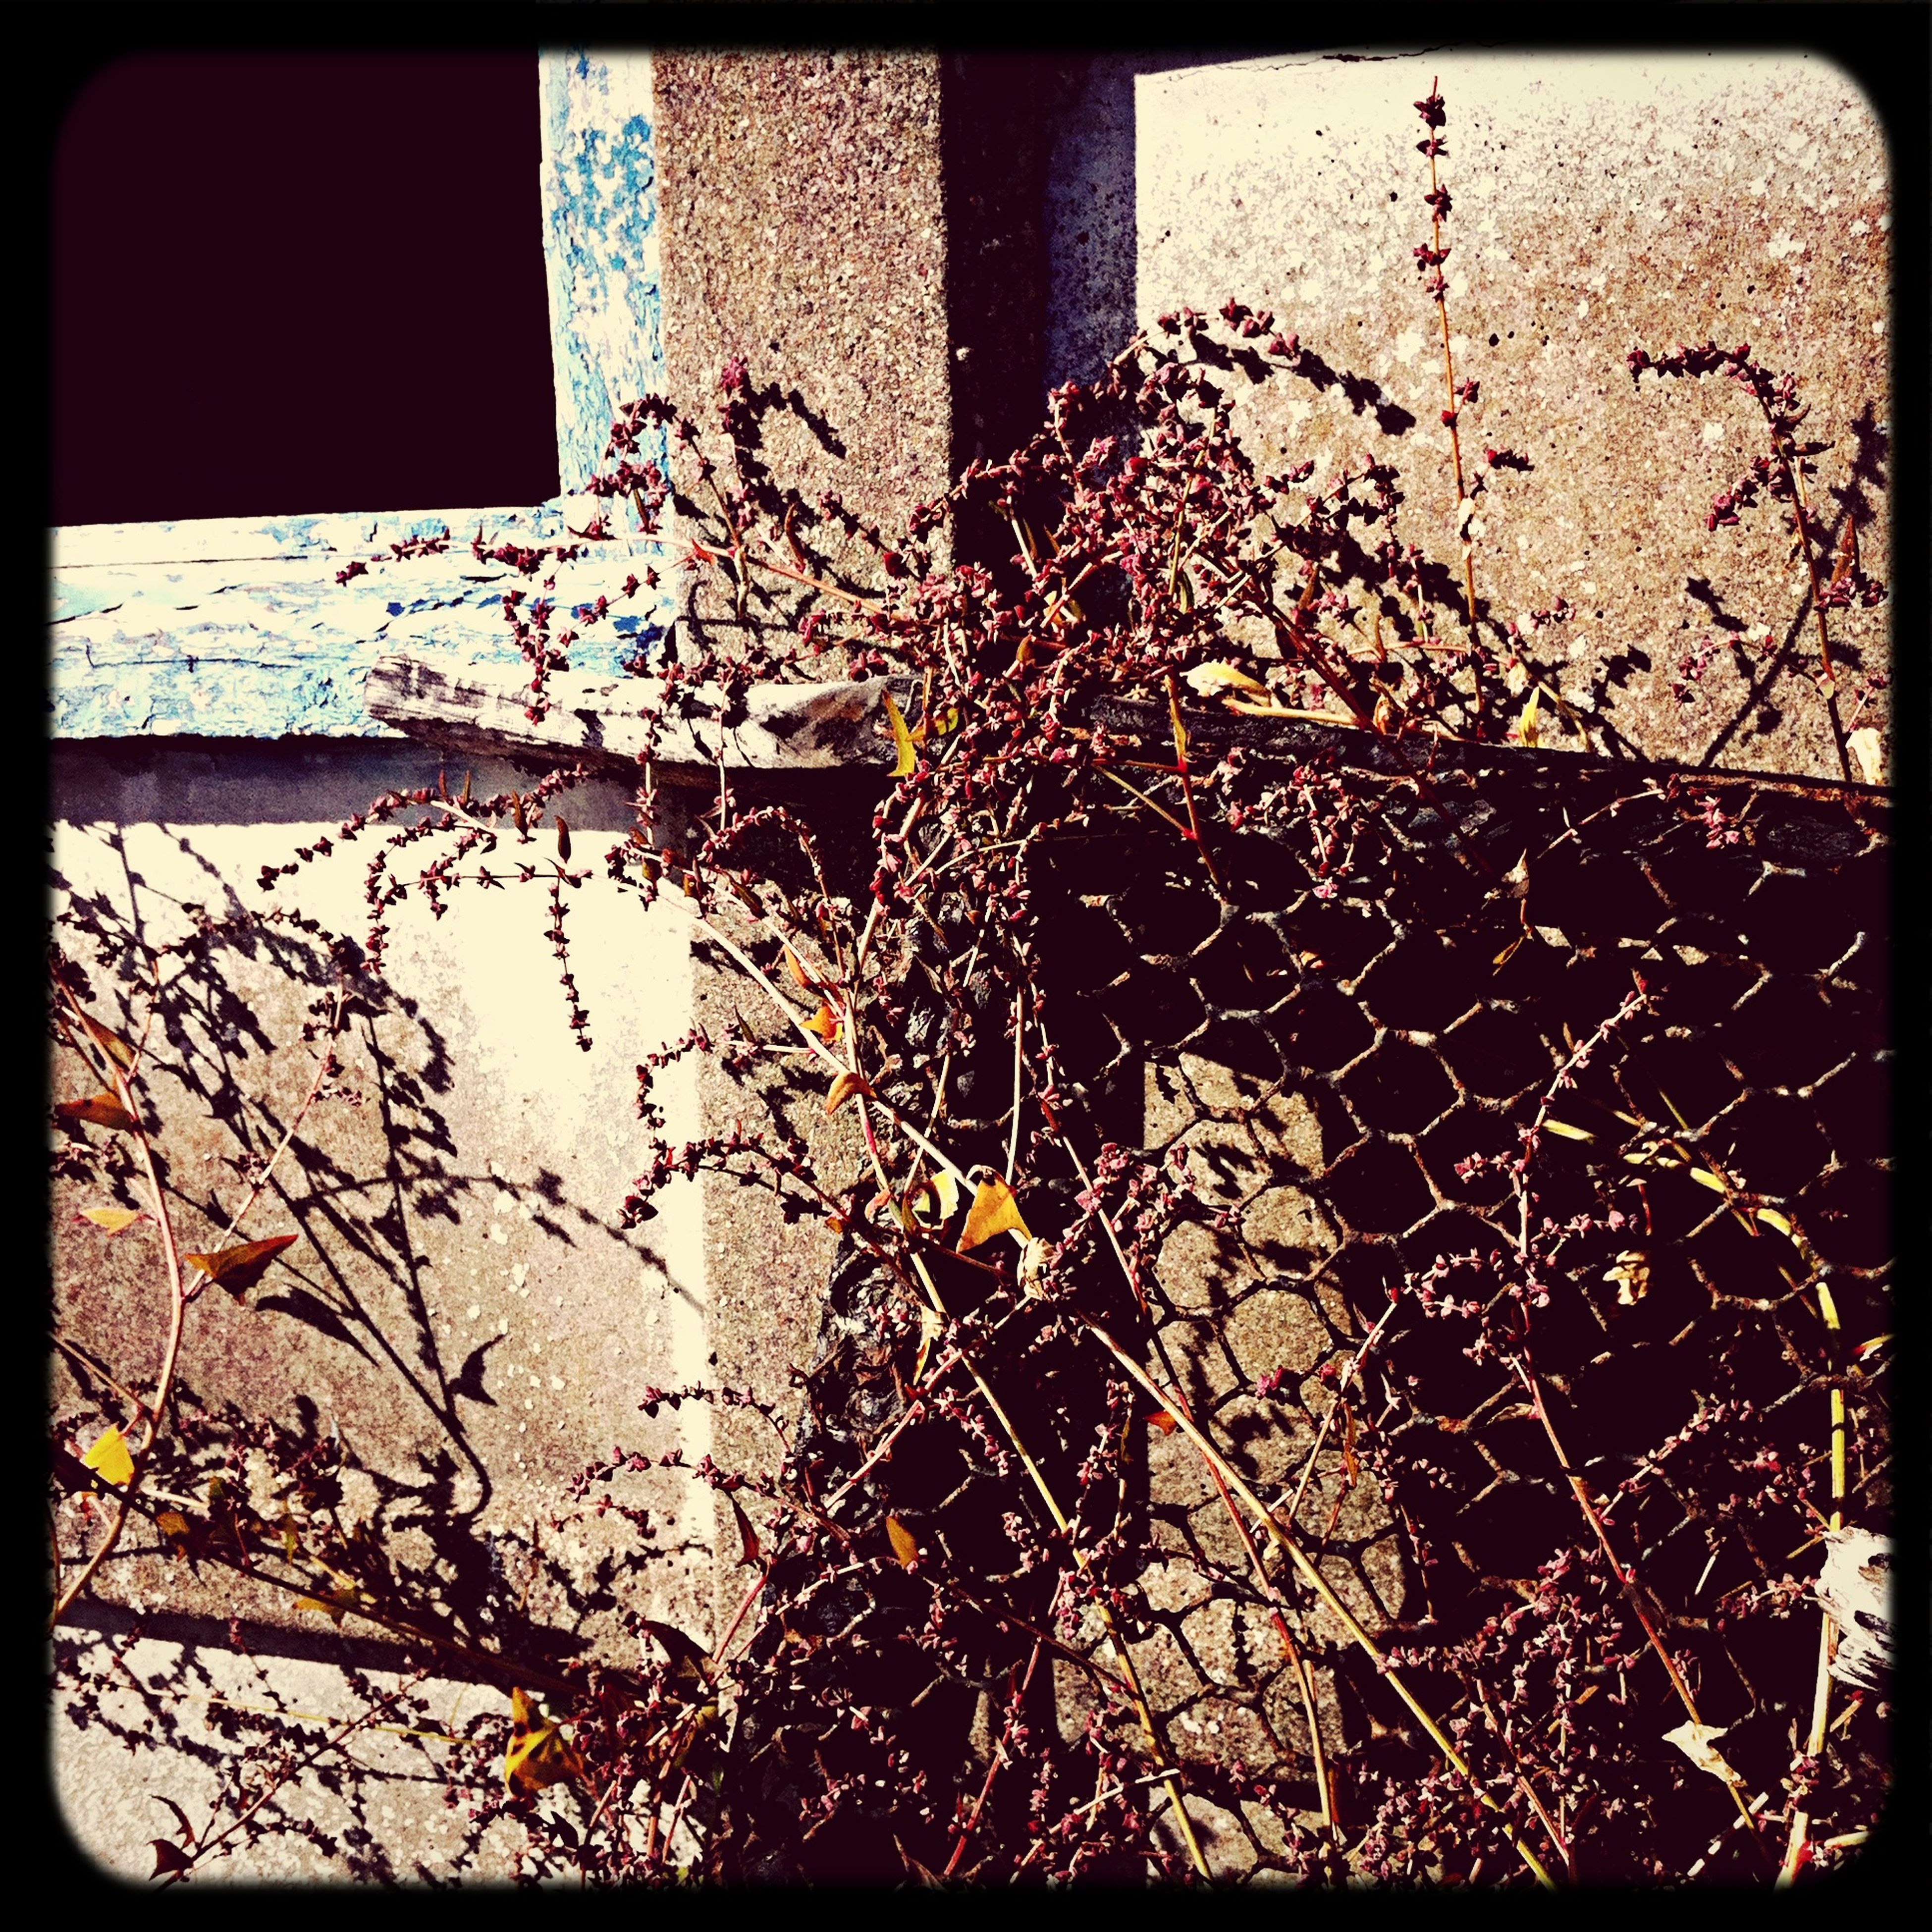 transfer print, auto post production filter, close-up, indoors, window, built structure, wall - building feature, branch, no people, metal, architecture, day, wall, sunlight, water, tree, plant, nature